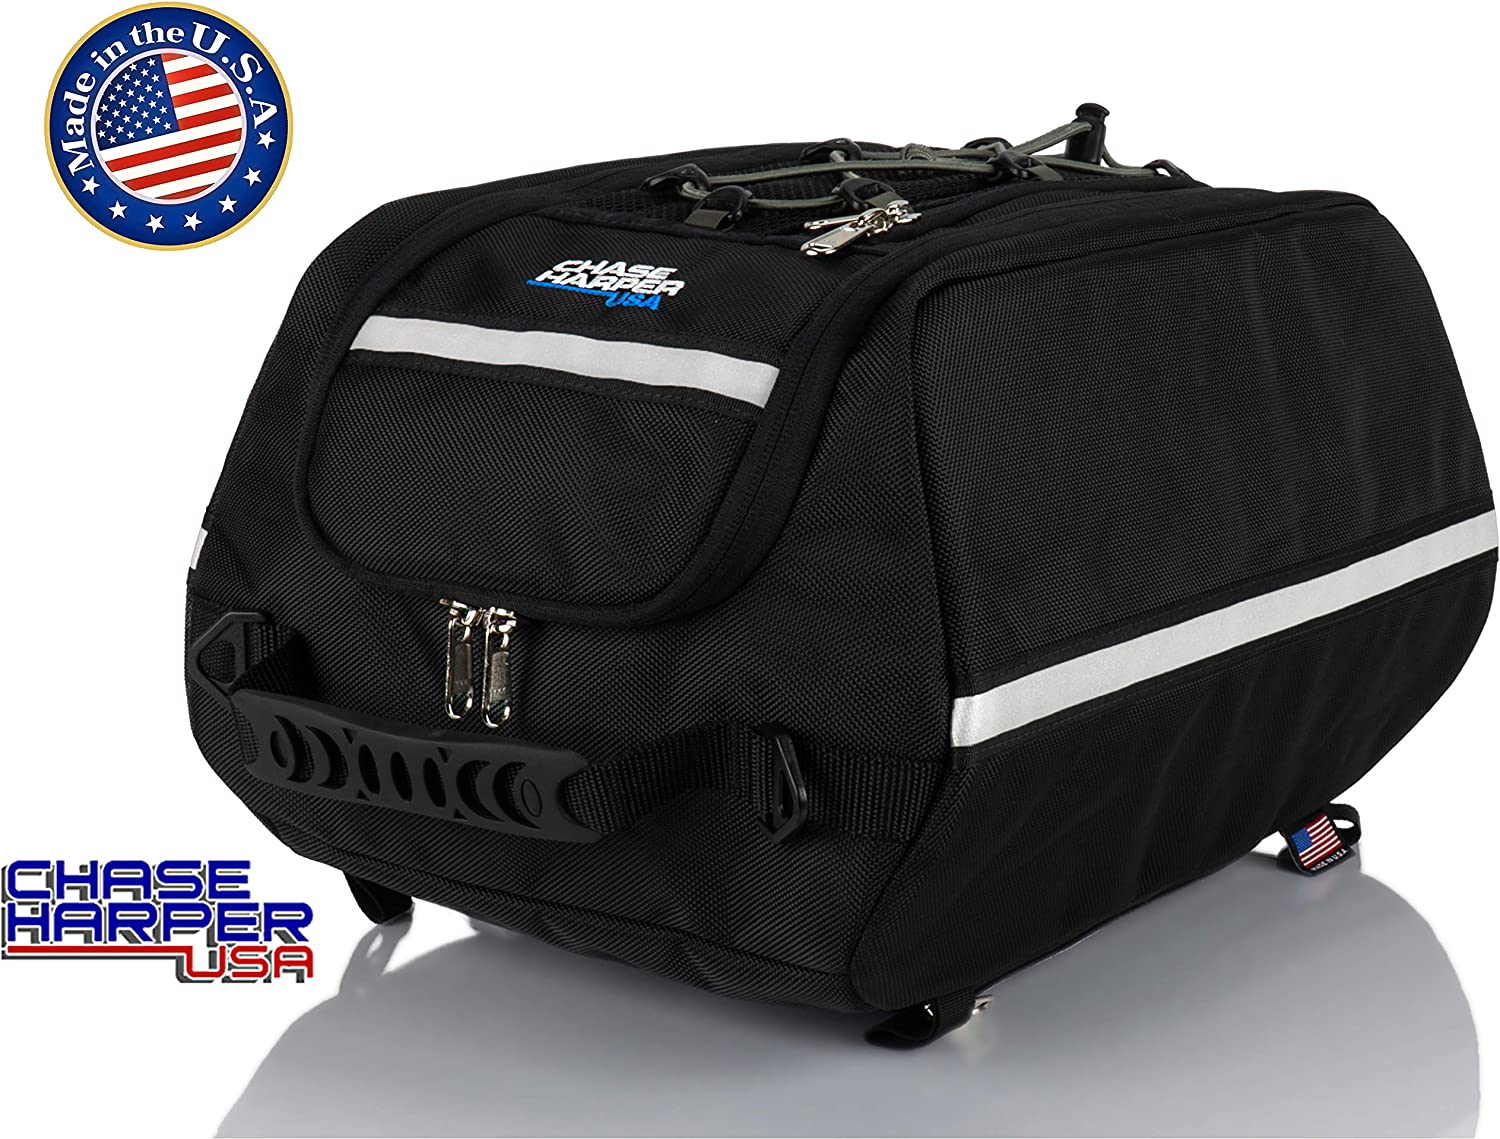 Chase Harper USA 4000 Aeropac Tail Trunk